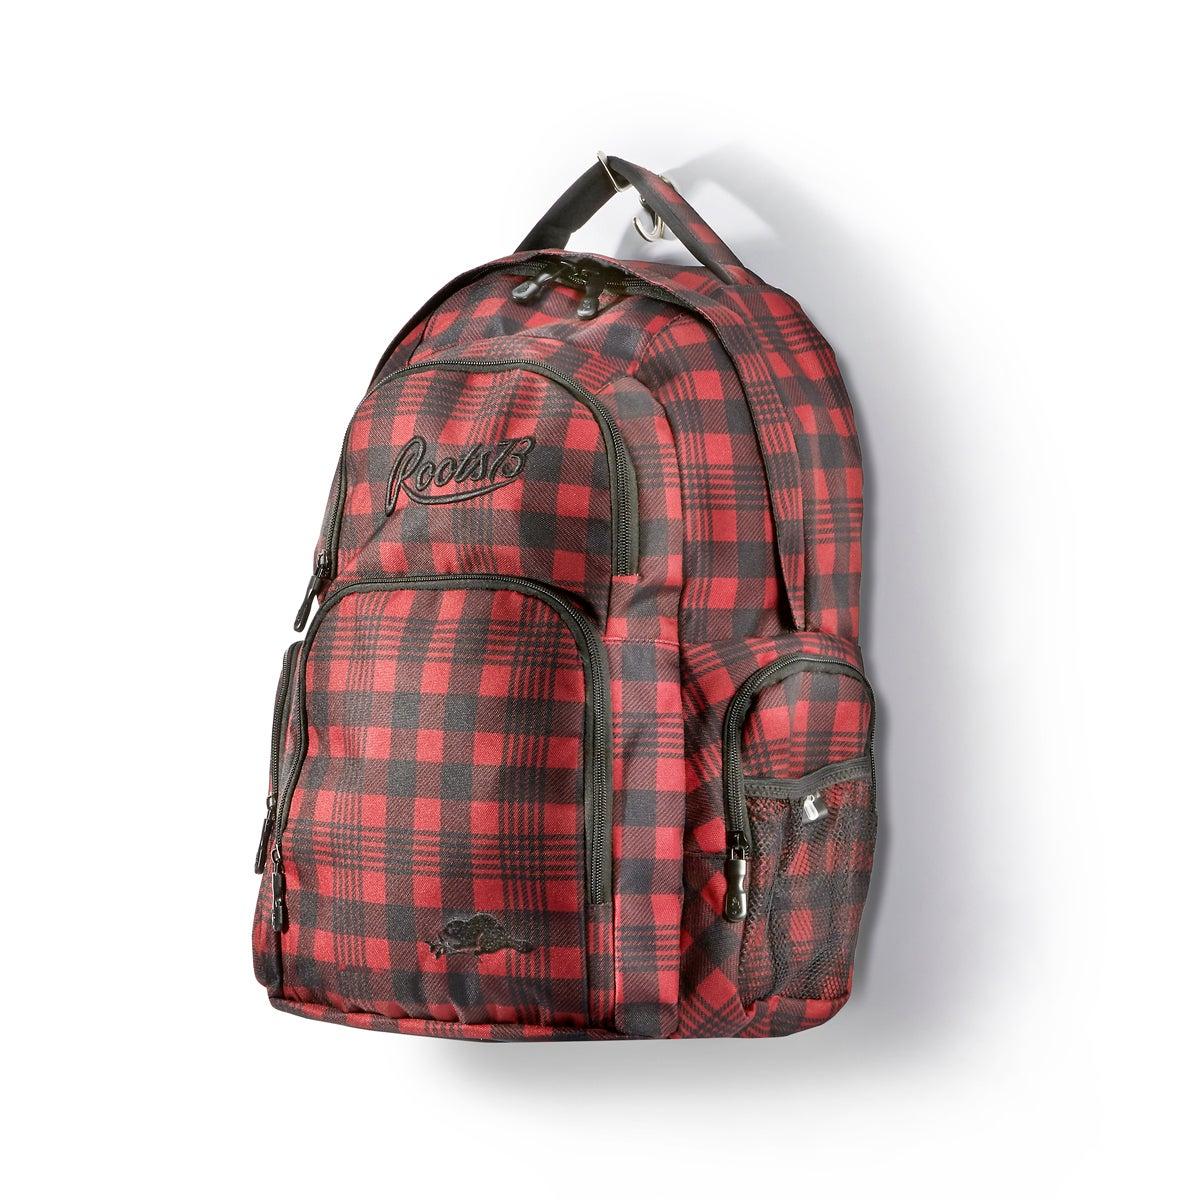 Unisex Roots73 red/black backpack